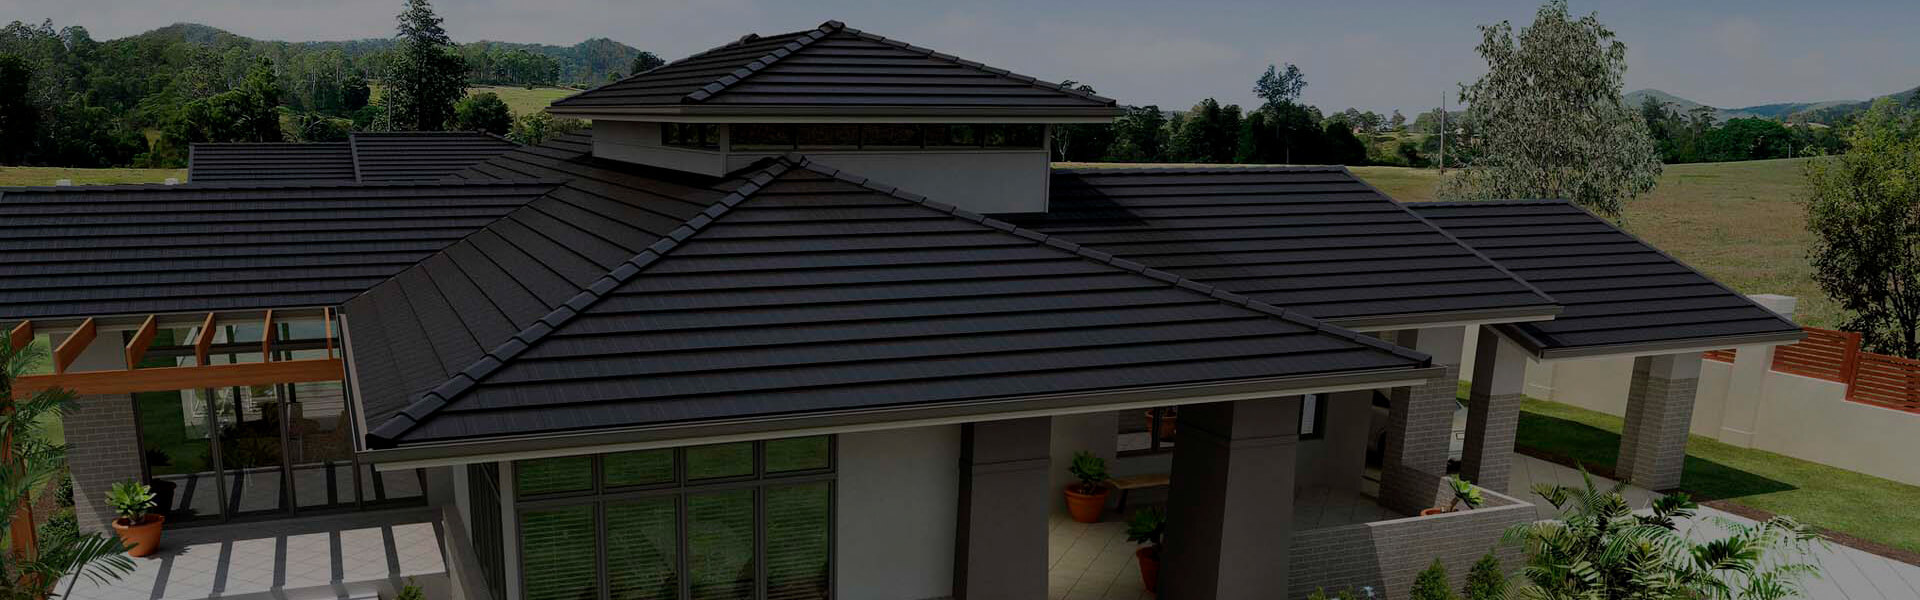 Concrete Roof TIles - Terracotta Concrete Roofing